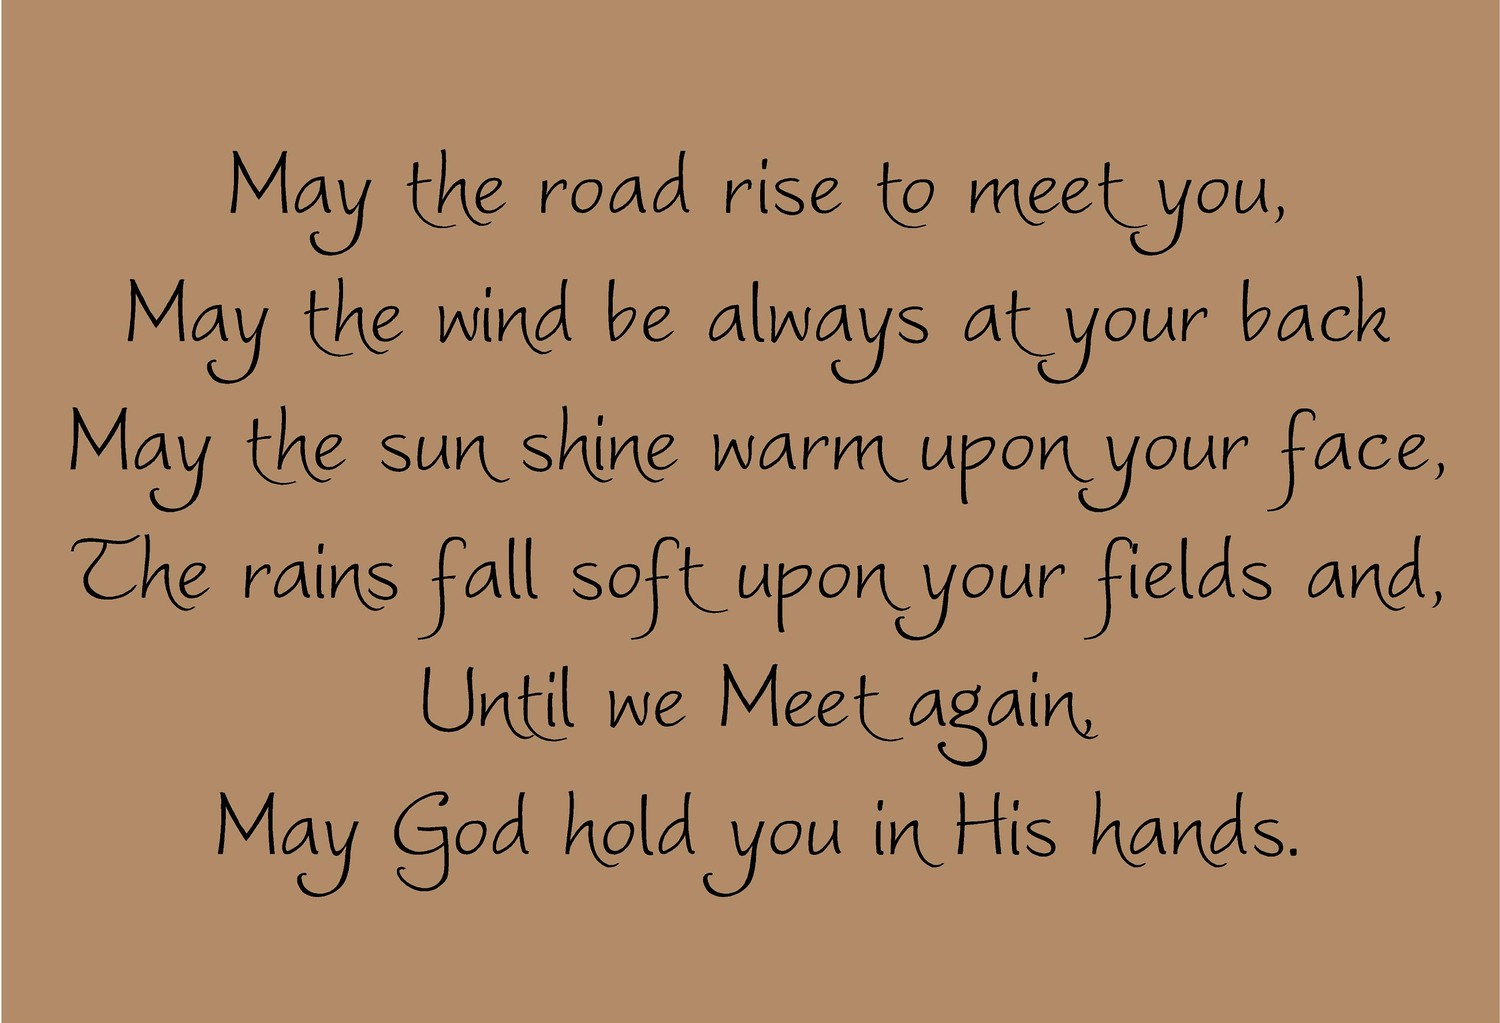 irish blessing may the road rise to meet you lyrics